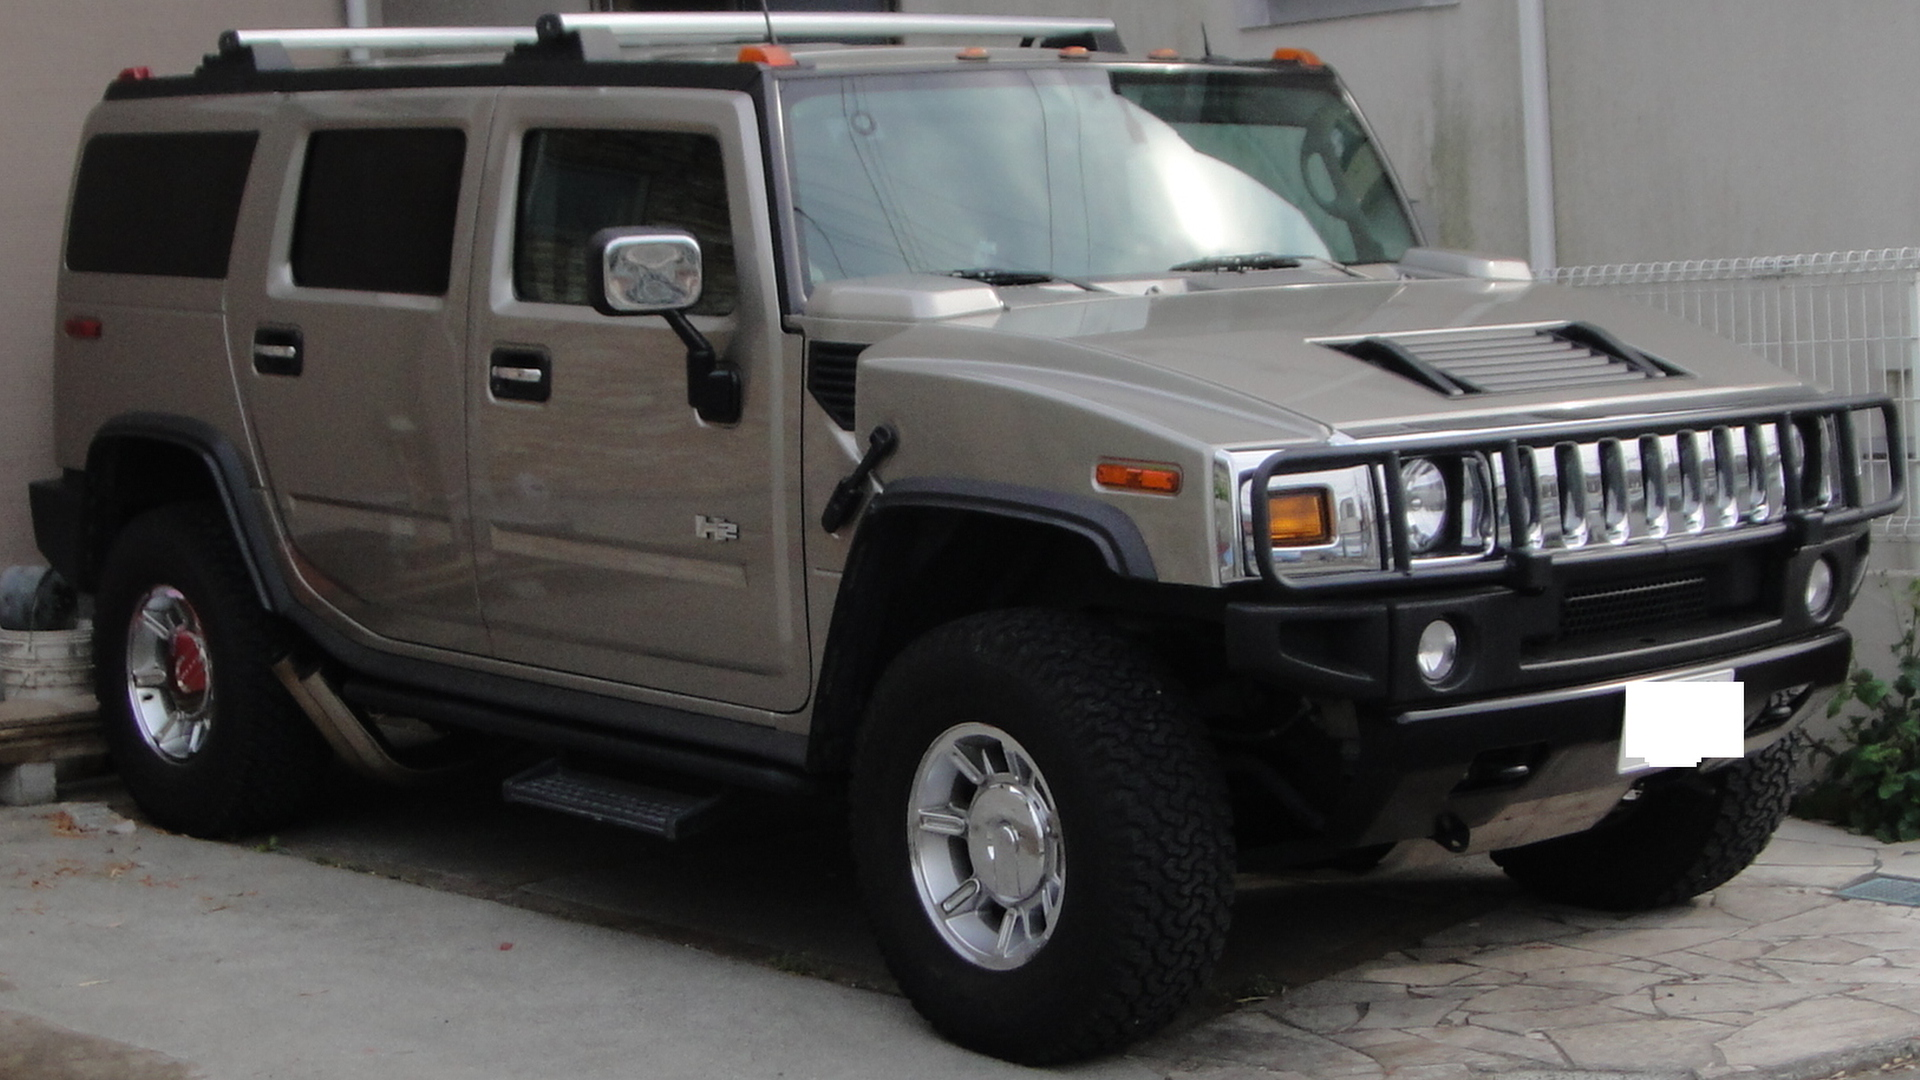 Hummer h2 is one strong truck for jumps and stunts hummer h2 hummer h2 vanachro Image collections